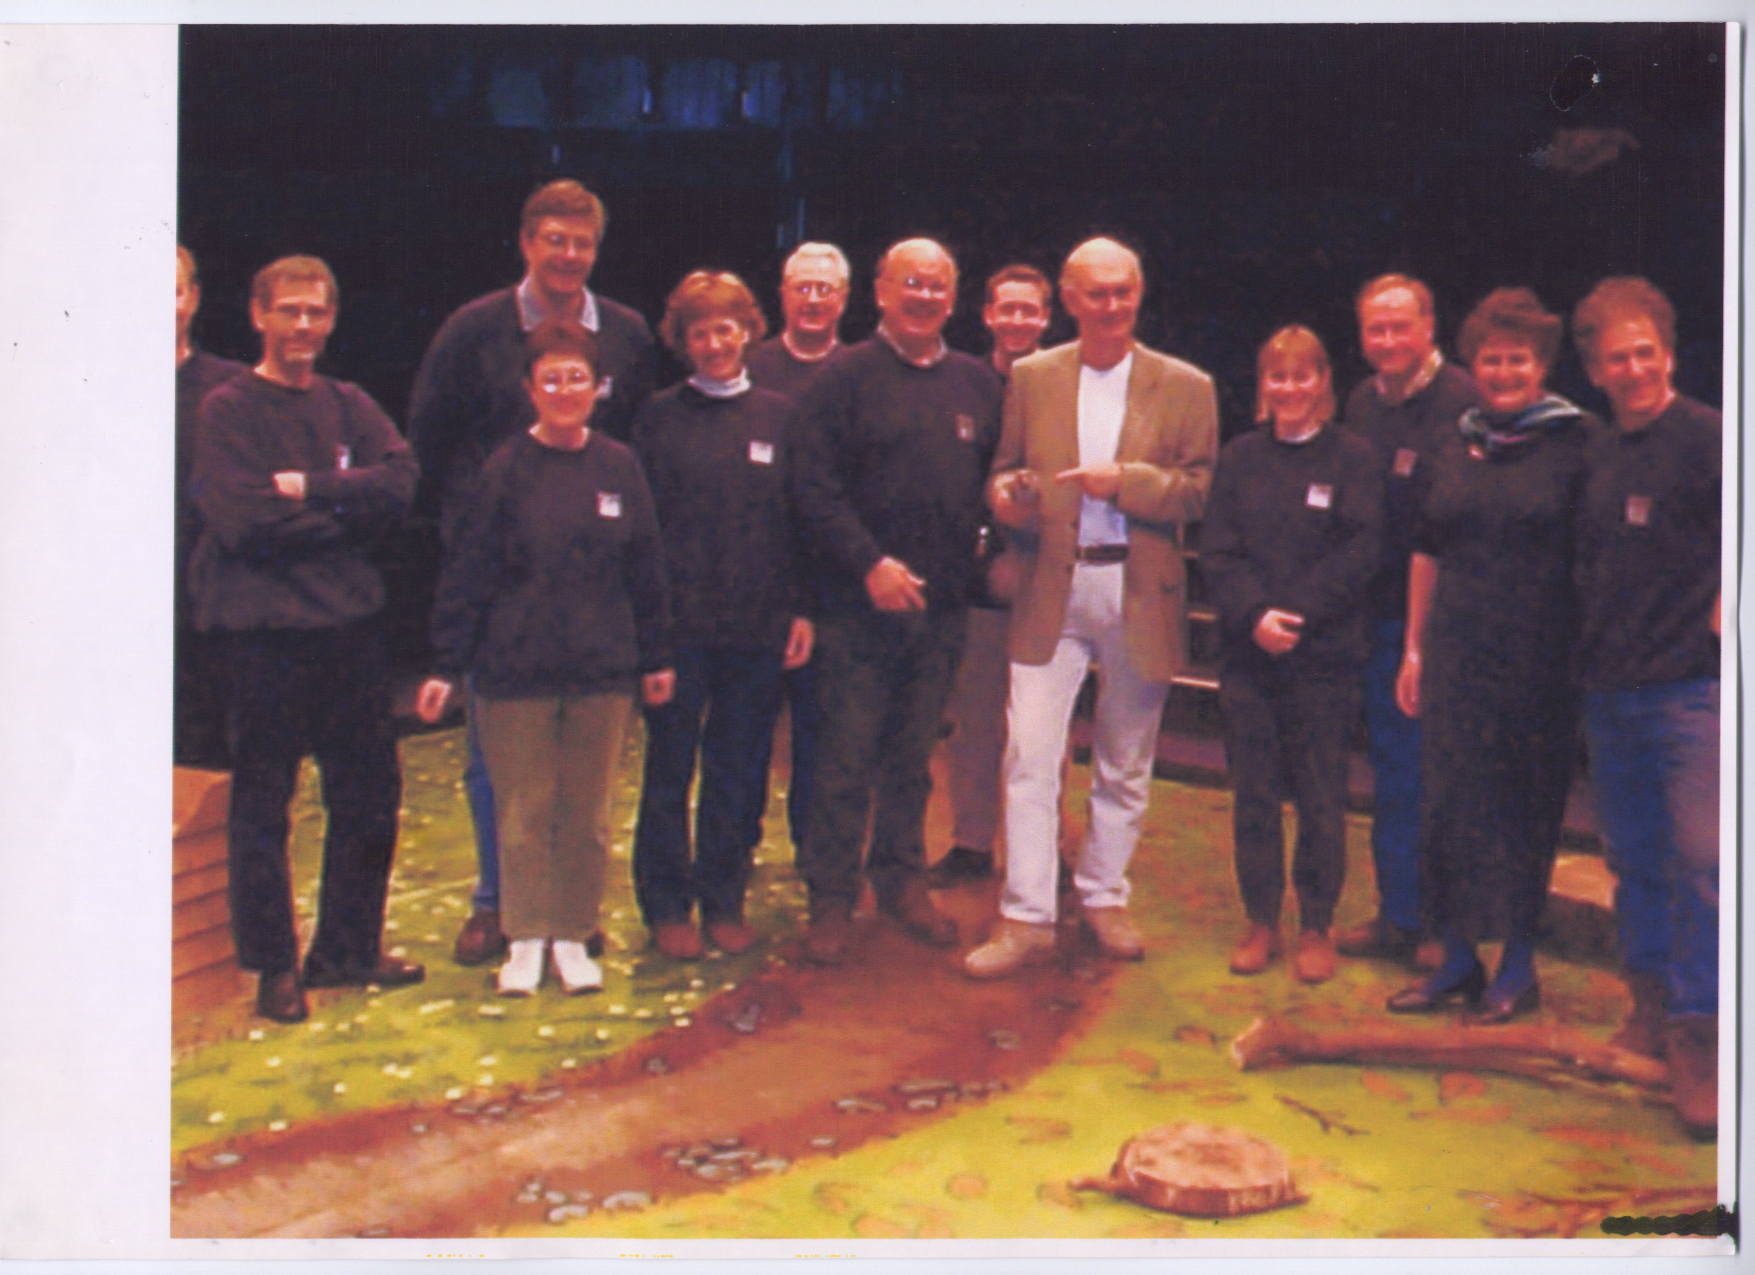 The cast and crew of Blue Remembered Hills (2001) on set with Sir Alan Ayckbourn